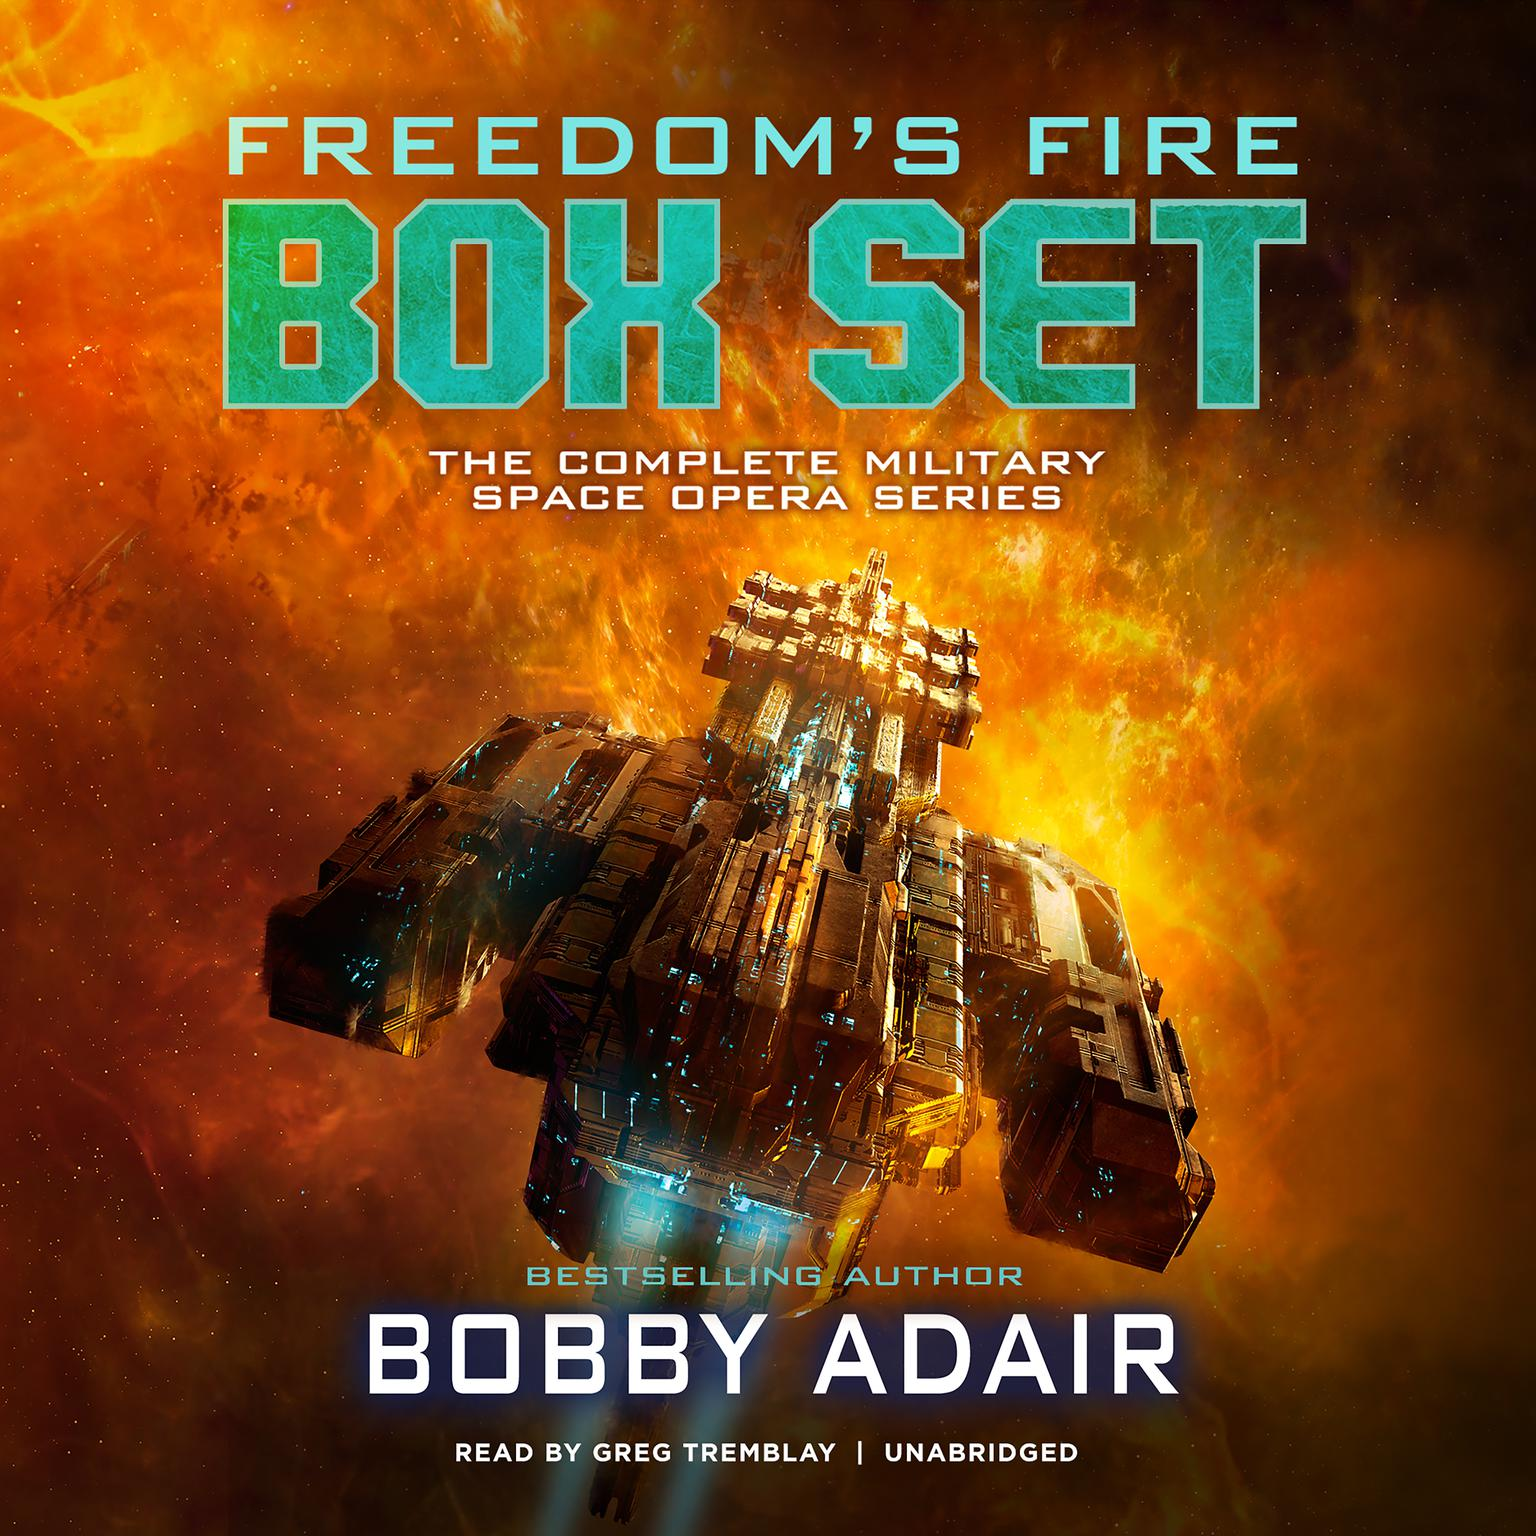 Printable Freedom's Fire Box Set: The Complete Military Space Opera Series Audiobook Cover Art